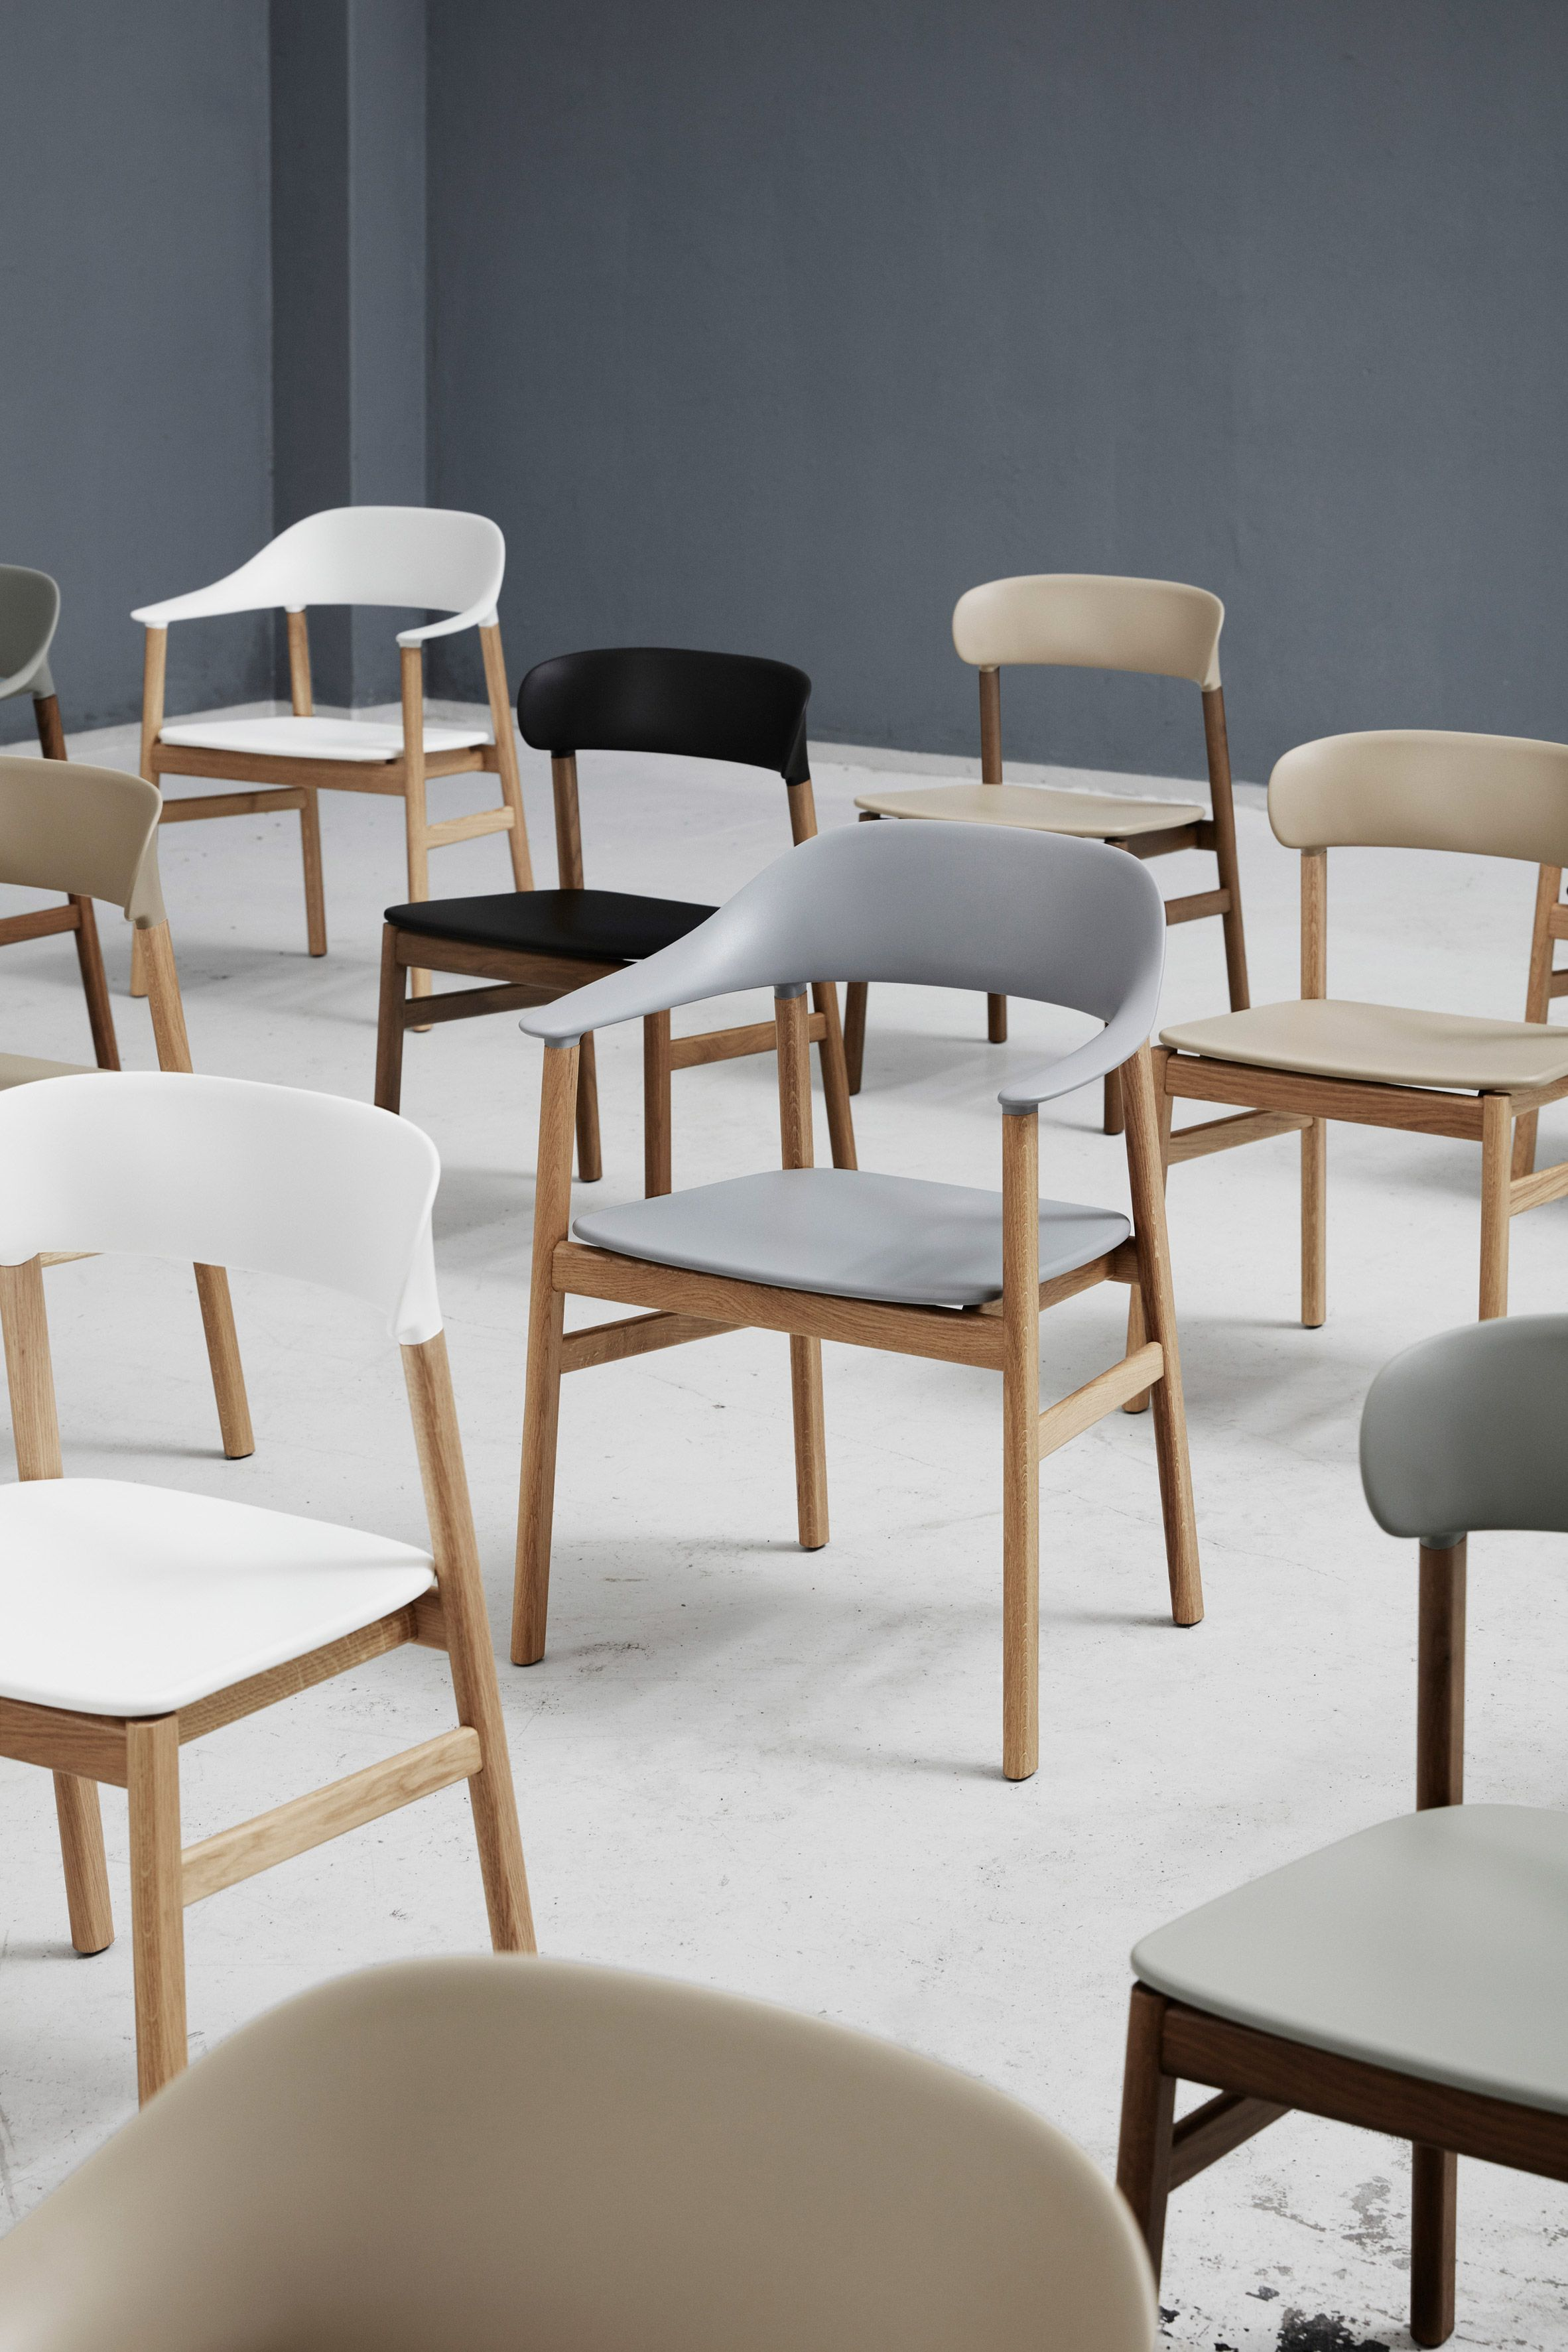 Salone Del Mobile 2018 Trend Guide And Highlights Trendbook Chair Design Scandinavian Chairs Furniture